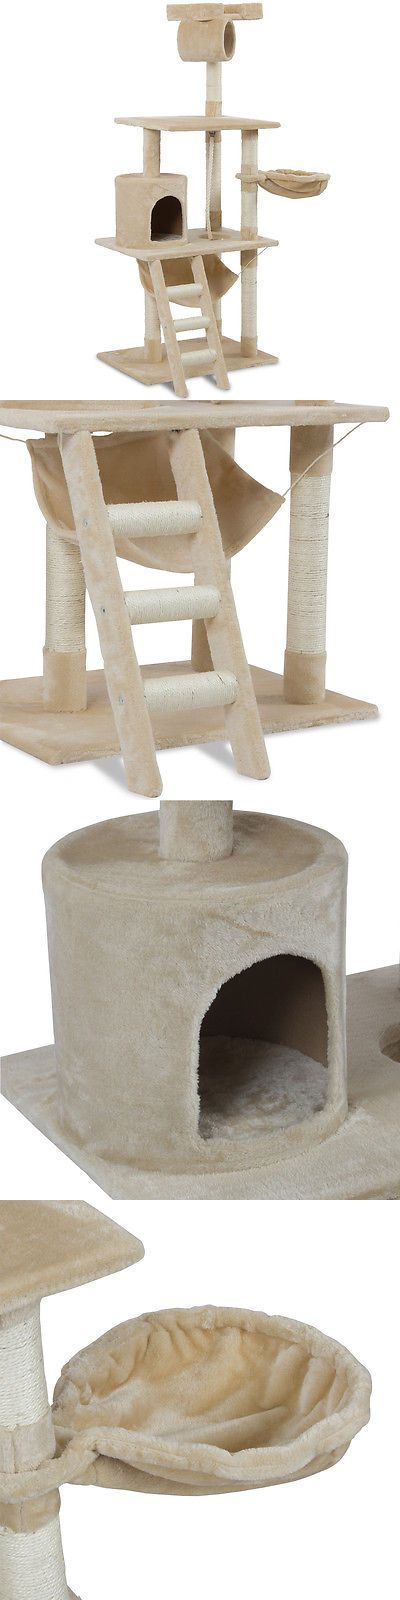 Furniture and Scratchers 20740: Deluxe Cat Tree Furniture Scratching Post Kitty Condo Pet House Tower 62 Almond -> BUY IT NOW ONLY: $49.99 on eBay!